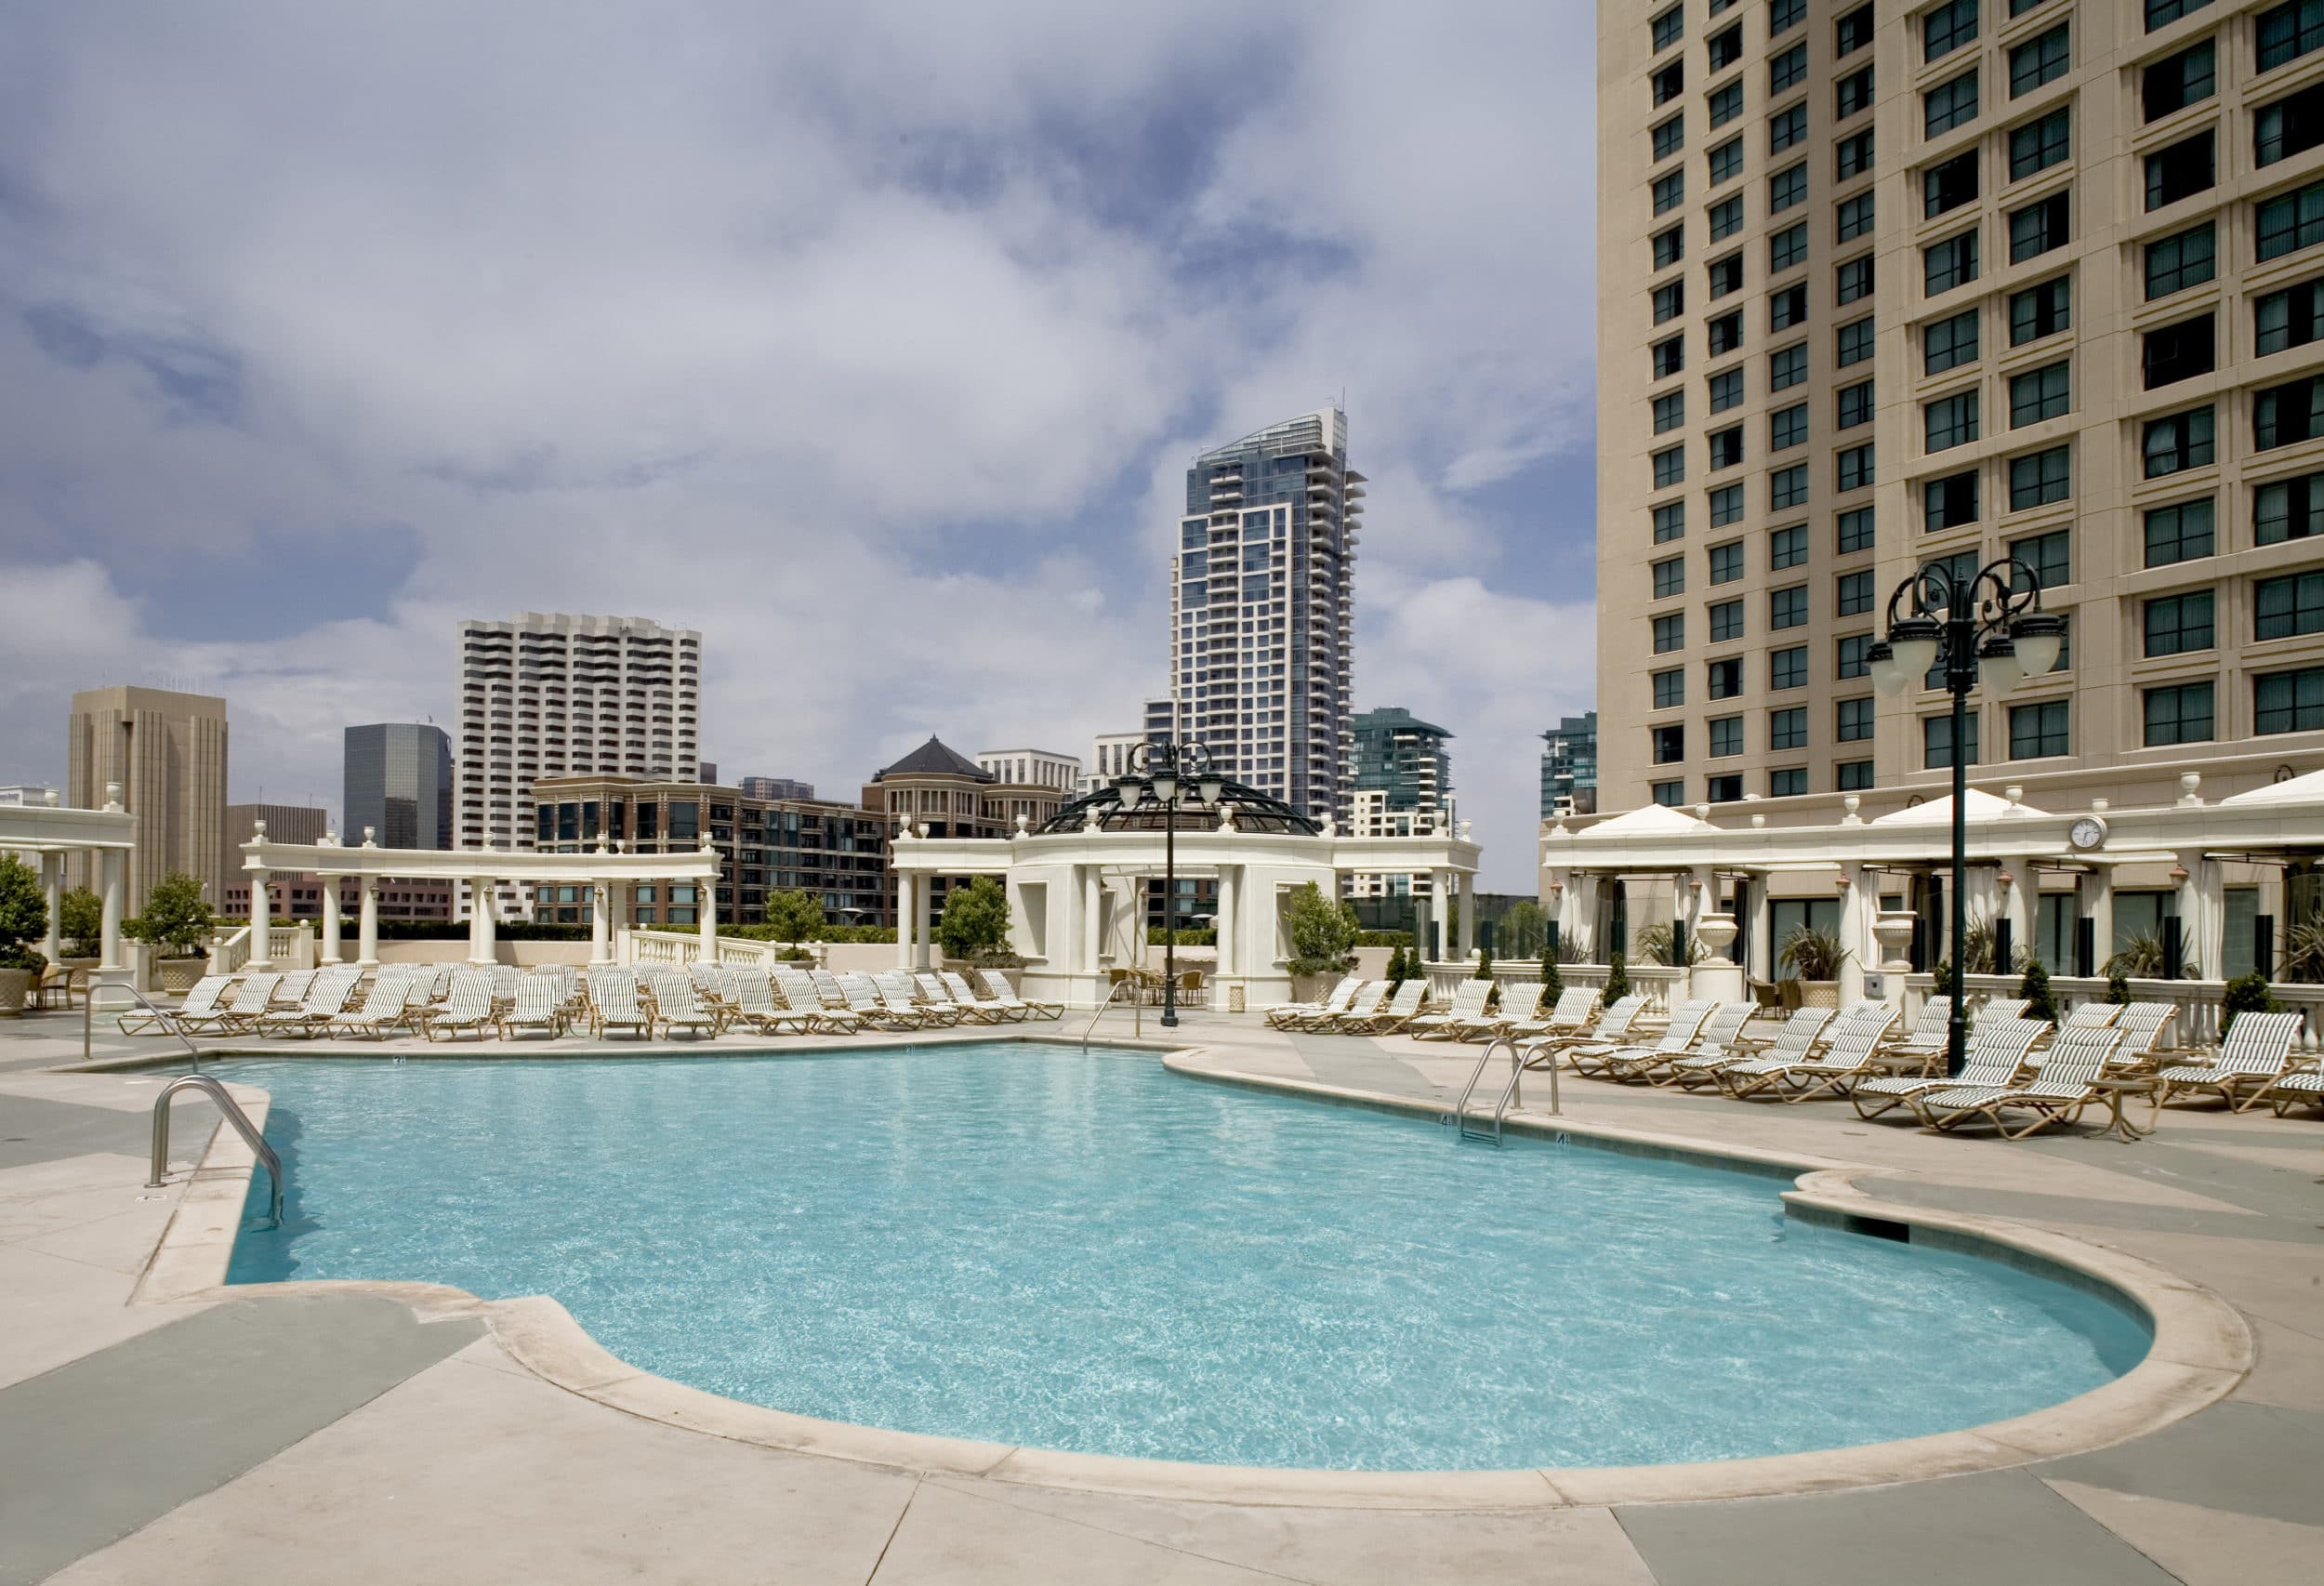 Manchester Grand Hyatt San Diego pool